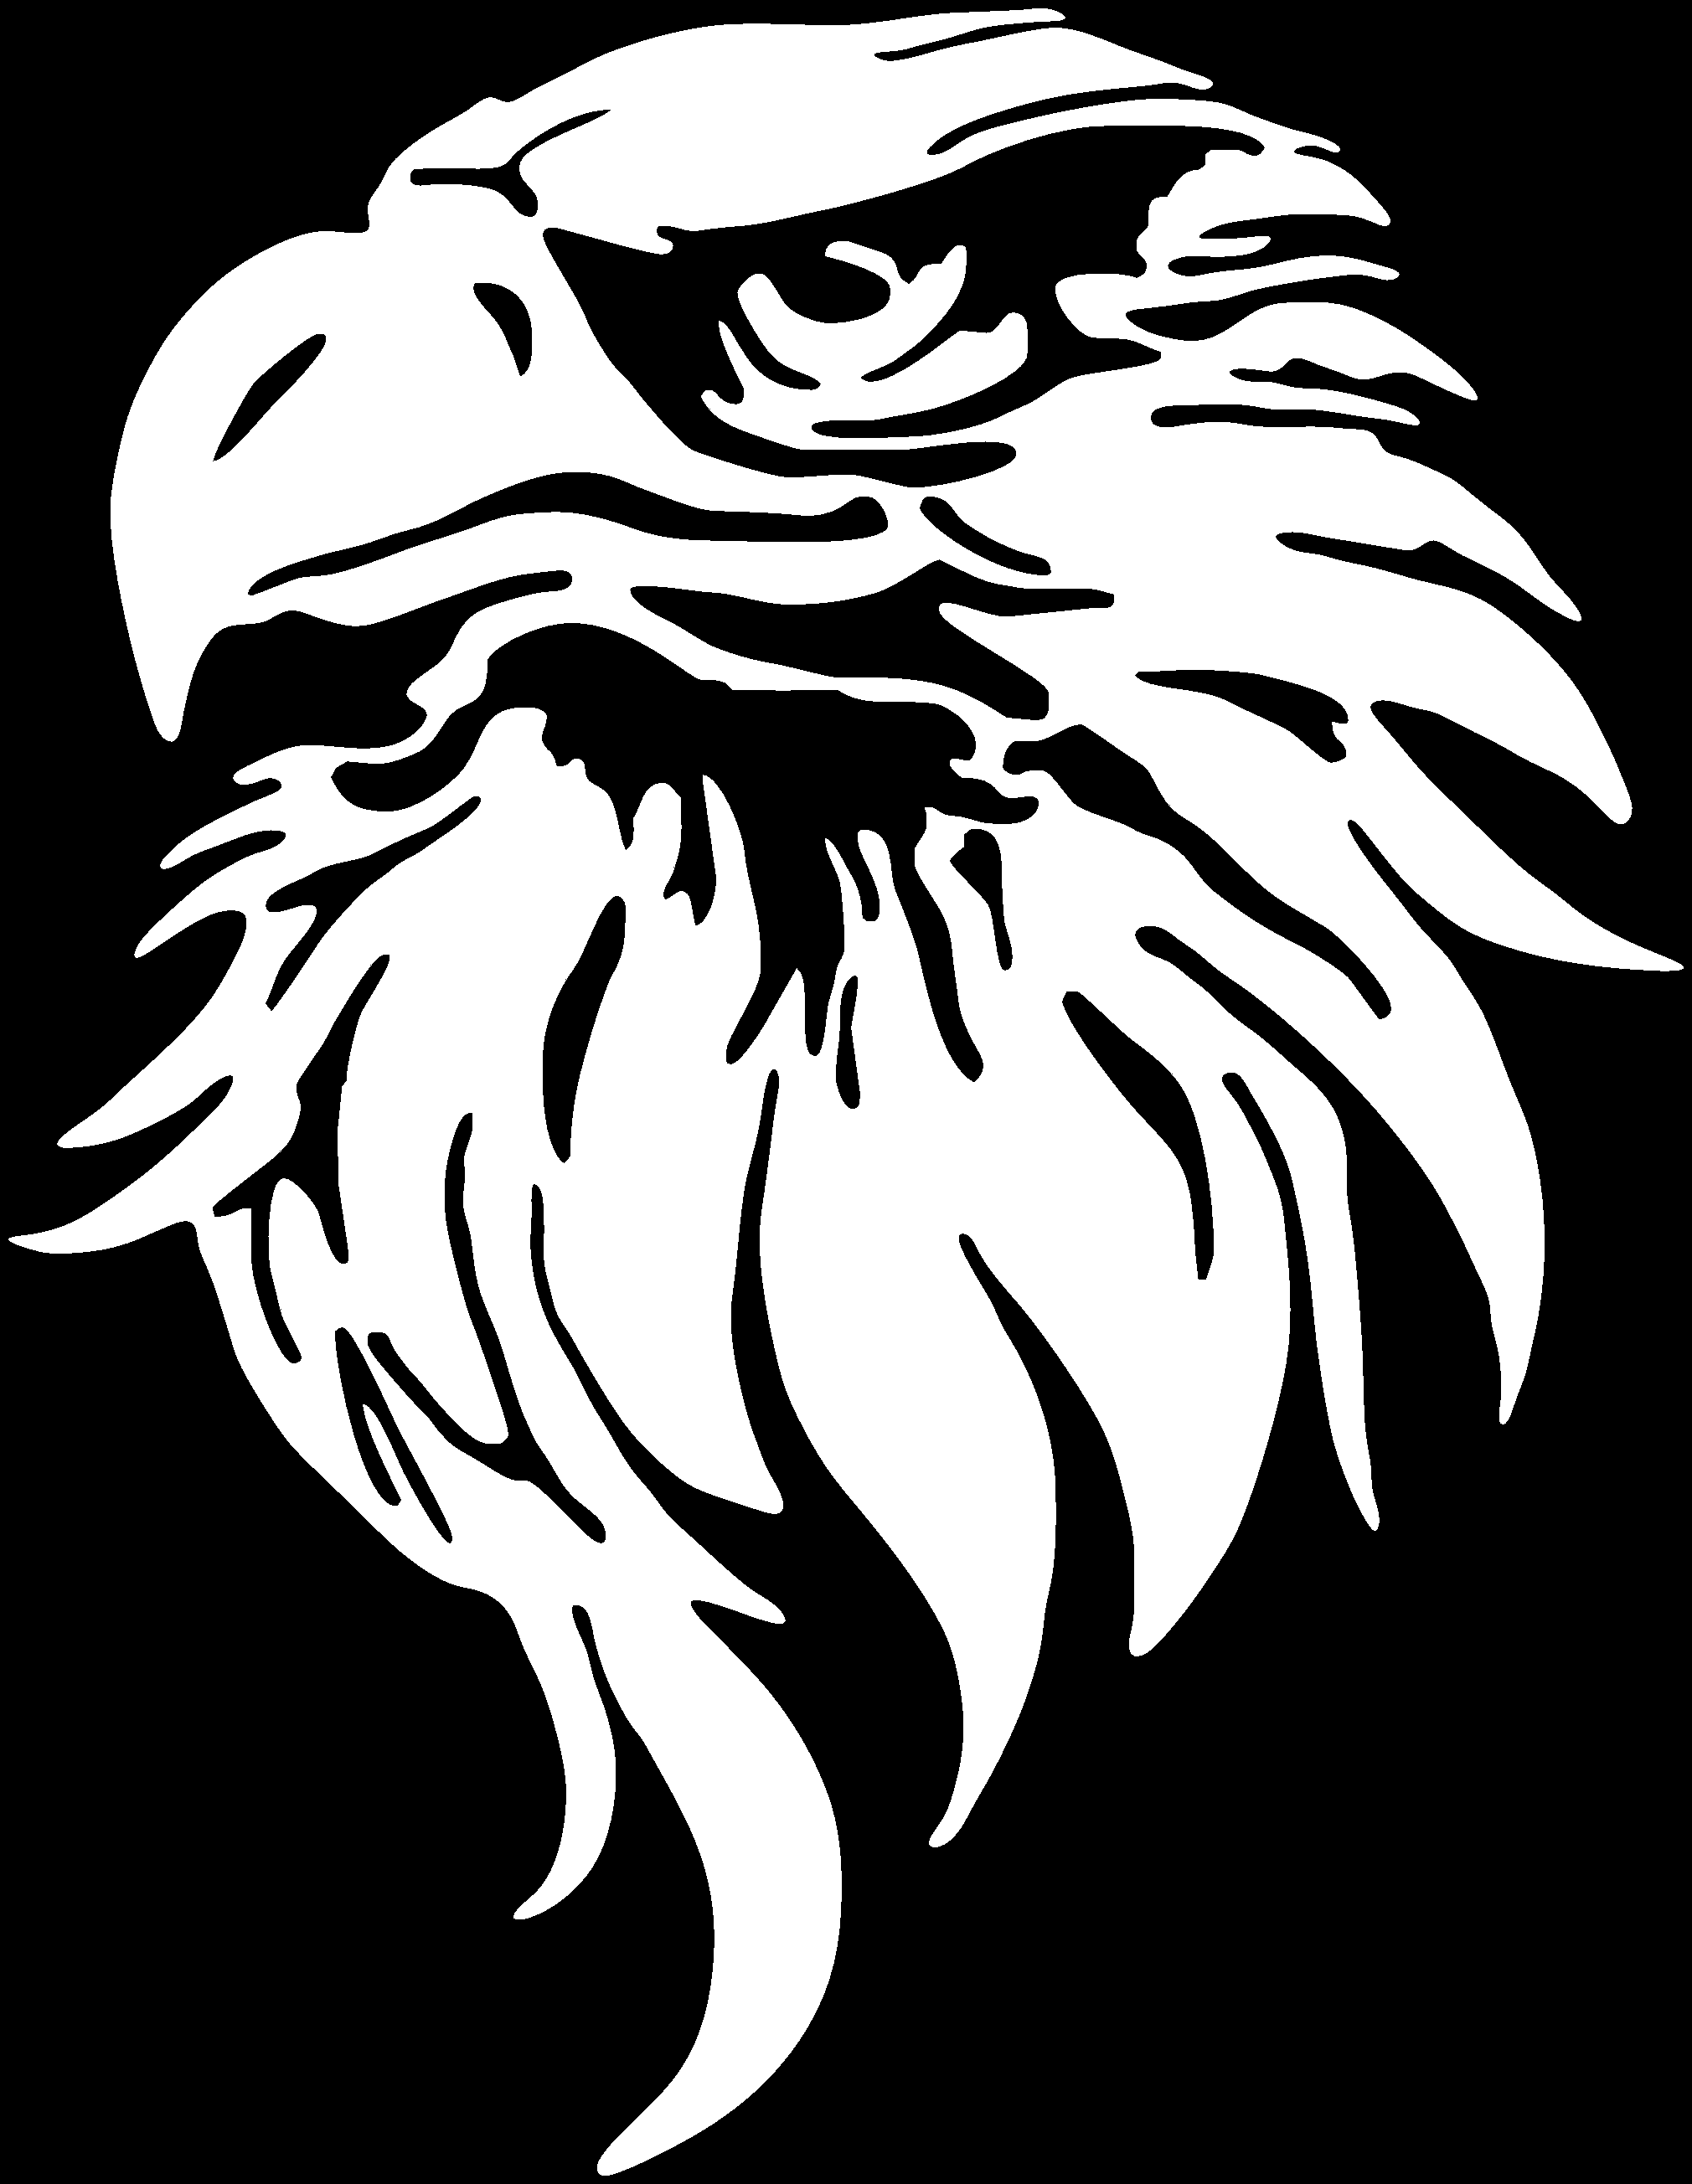 eagle head silhouette free 8 eagle silhouettes in vector eps ai eagle silhouette head